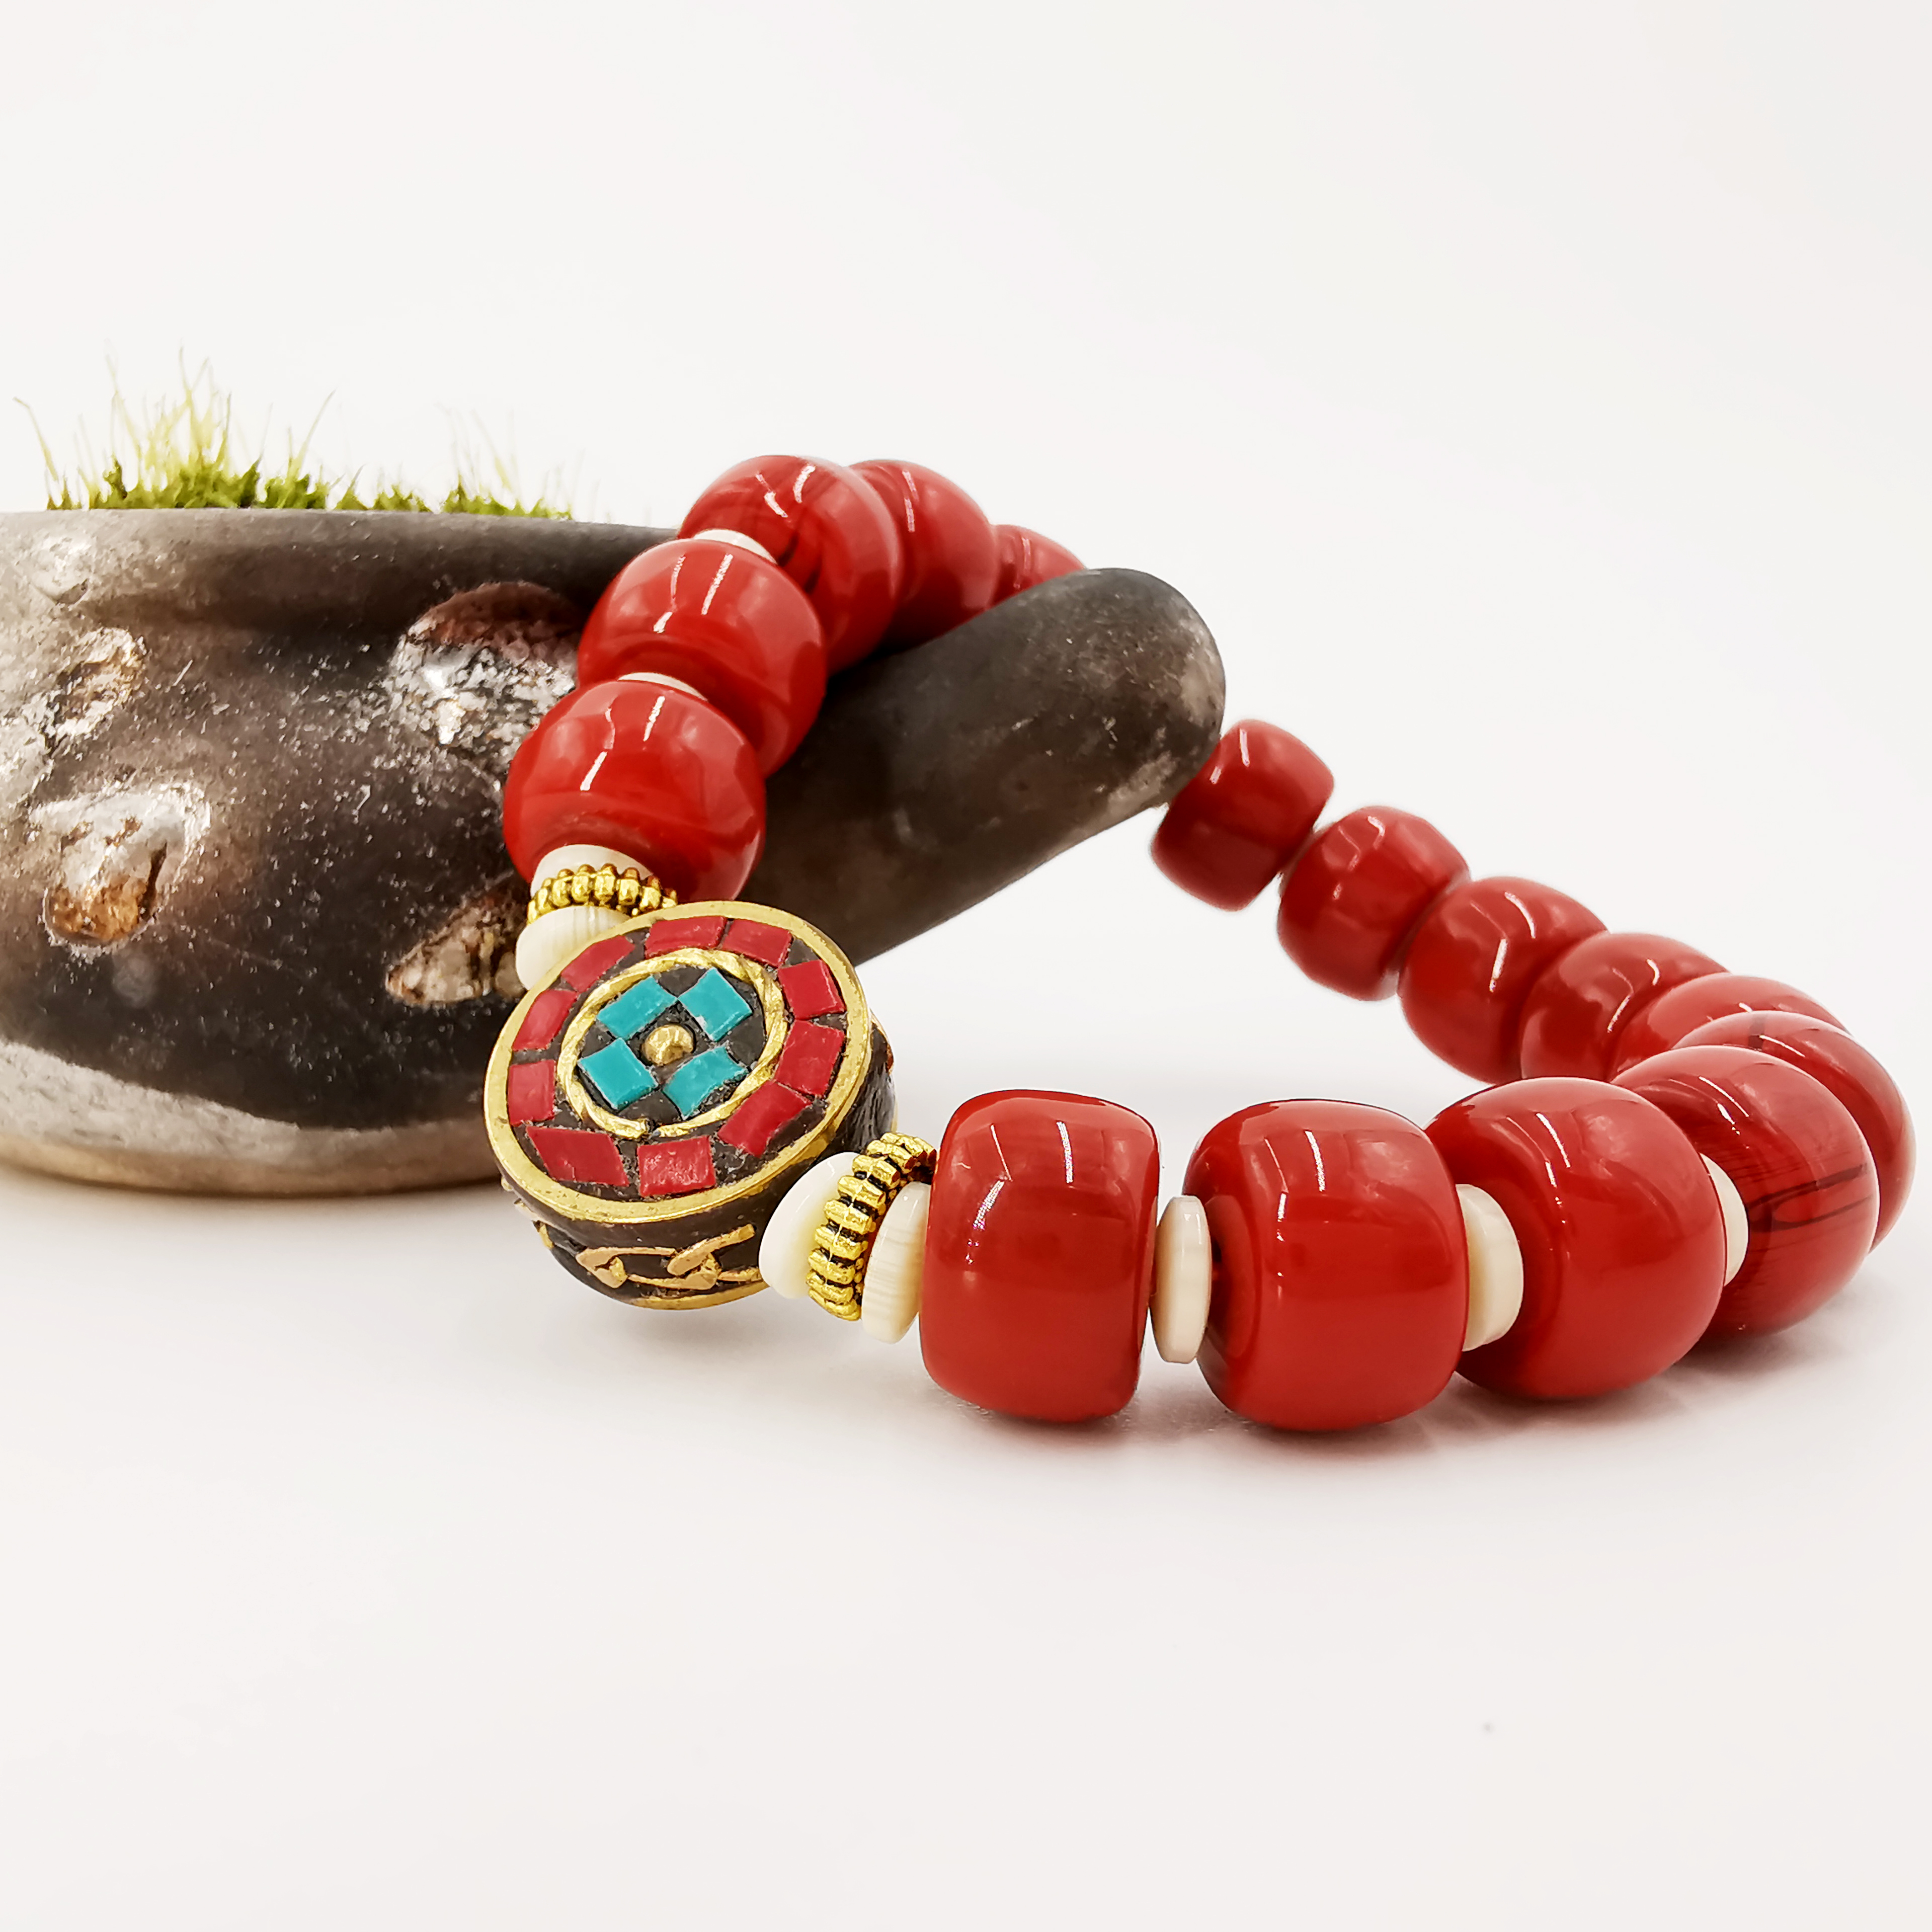 Ethnic Red Artificial Coral Round Beads Handmade Tibetan Buddha Bracelet Chain Women Men Lucky Charm Jewelry Gift Drop Shipping